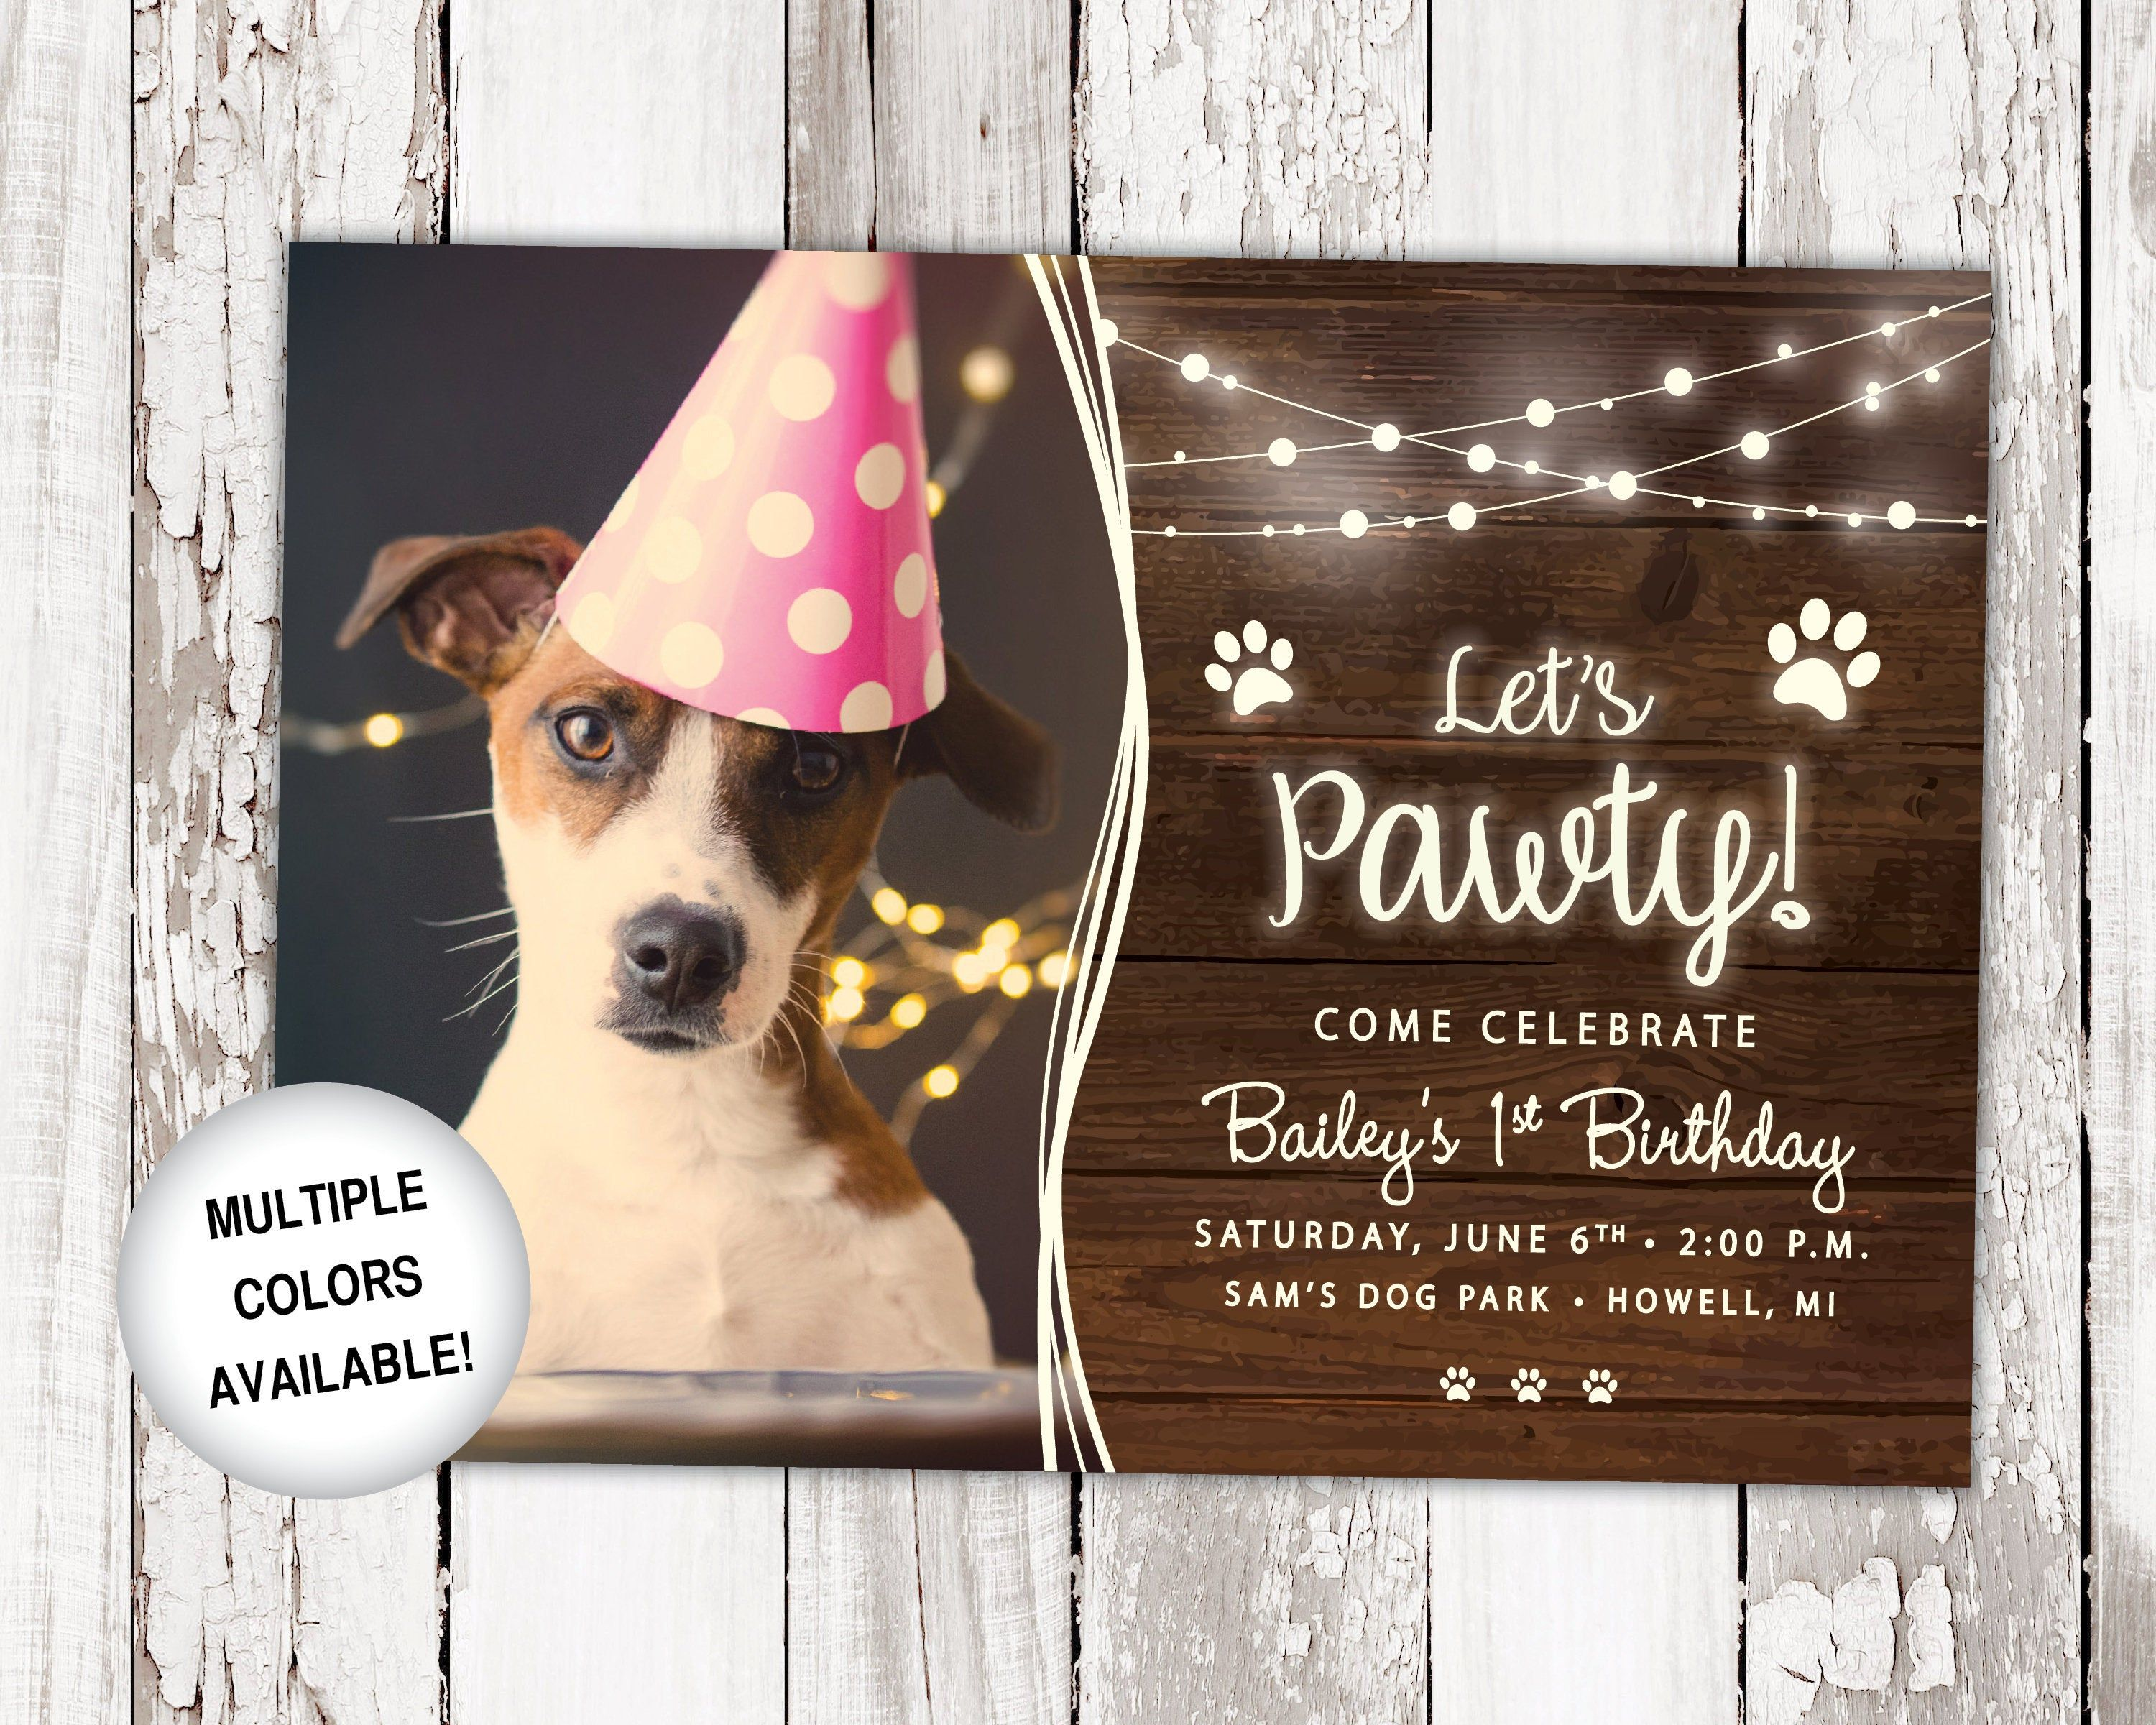 Dog Birthday Party Invitation With Photo Let S Pawty Etsy Dog Birthday Party Invitations Dog Party Invitations Puppy Birthday Invitations